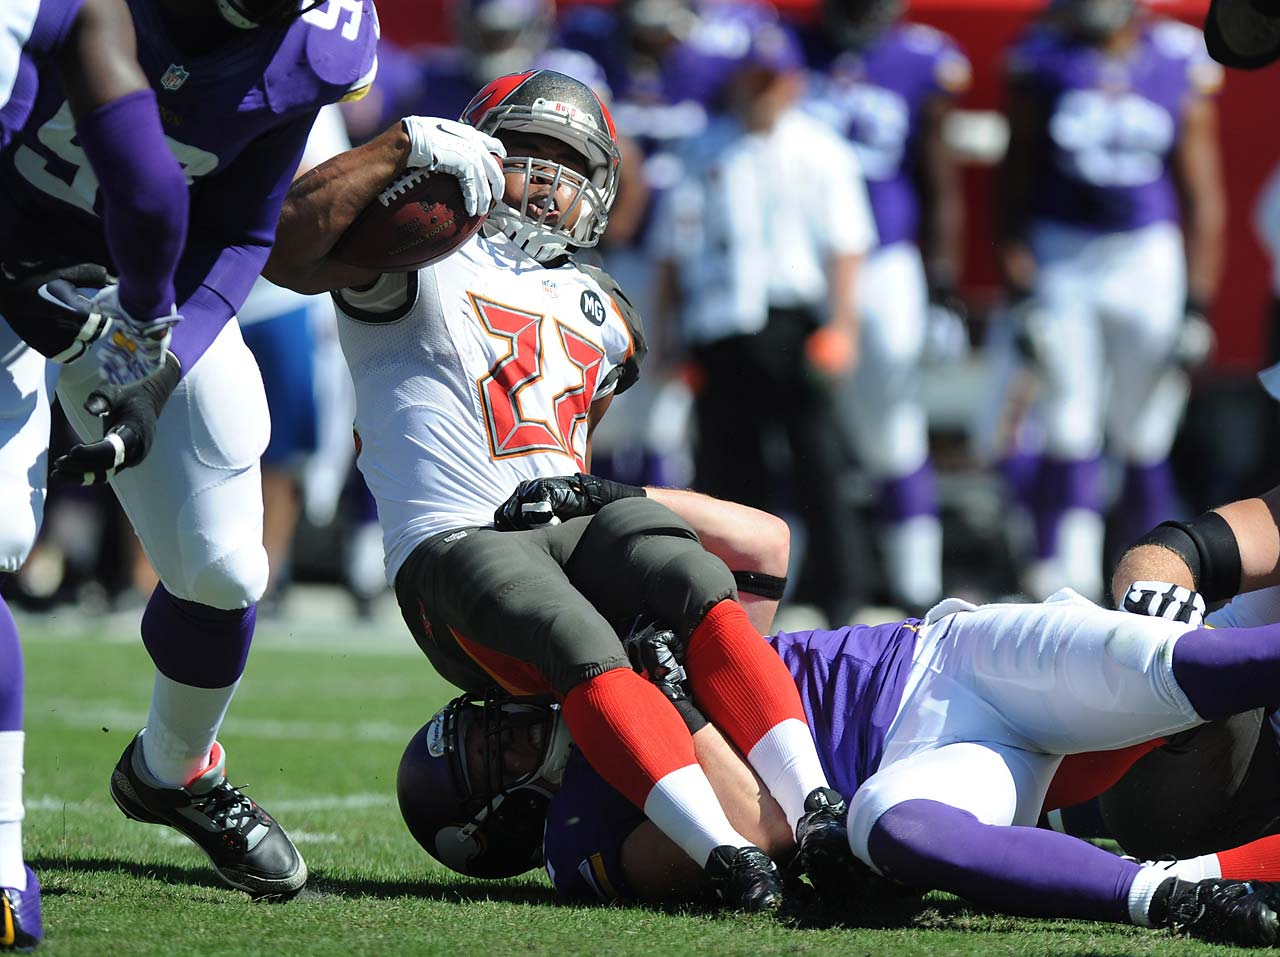 Running back Doug Martin of the Tampa Bay Buccaneers is stopped on a carry against the Minnesota Vikings.